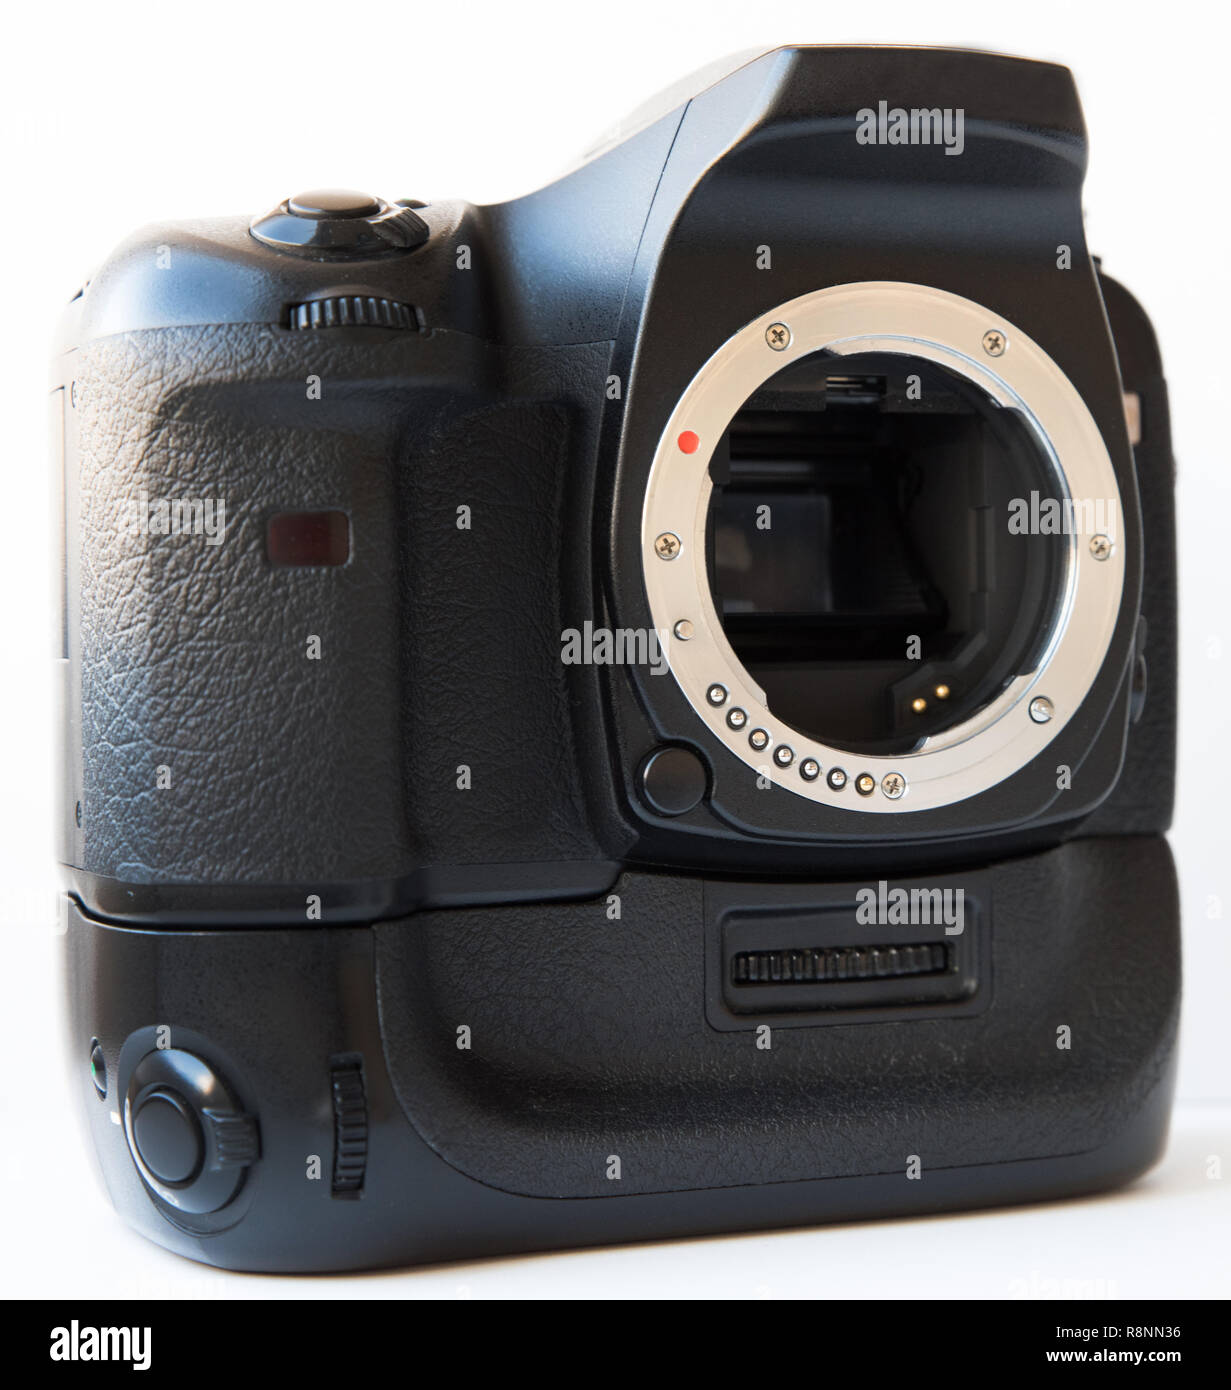 Digital SLR camera with lens and vertical battery grip isolated - Stock Image